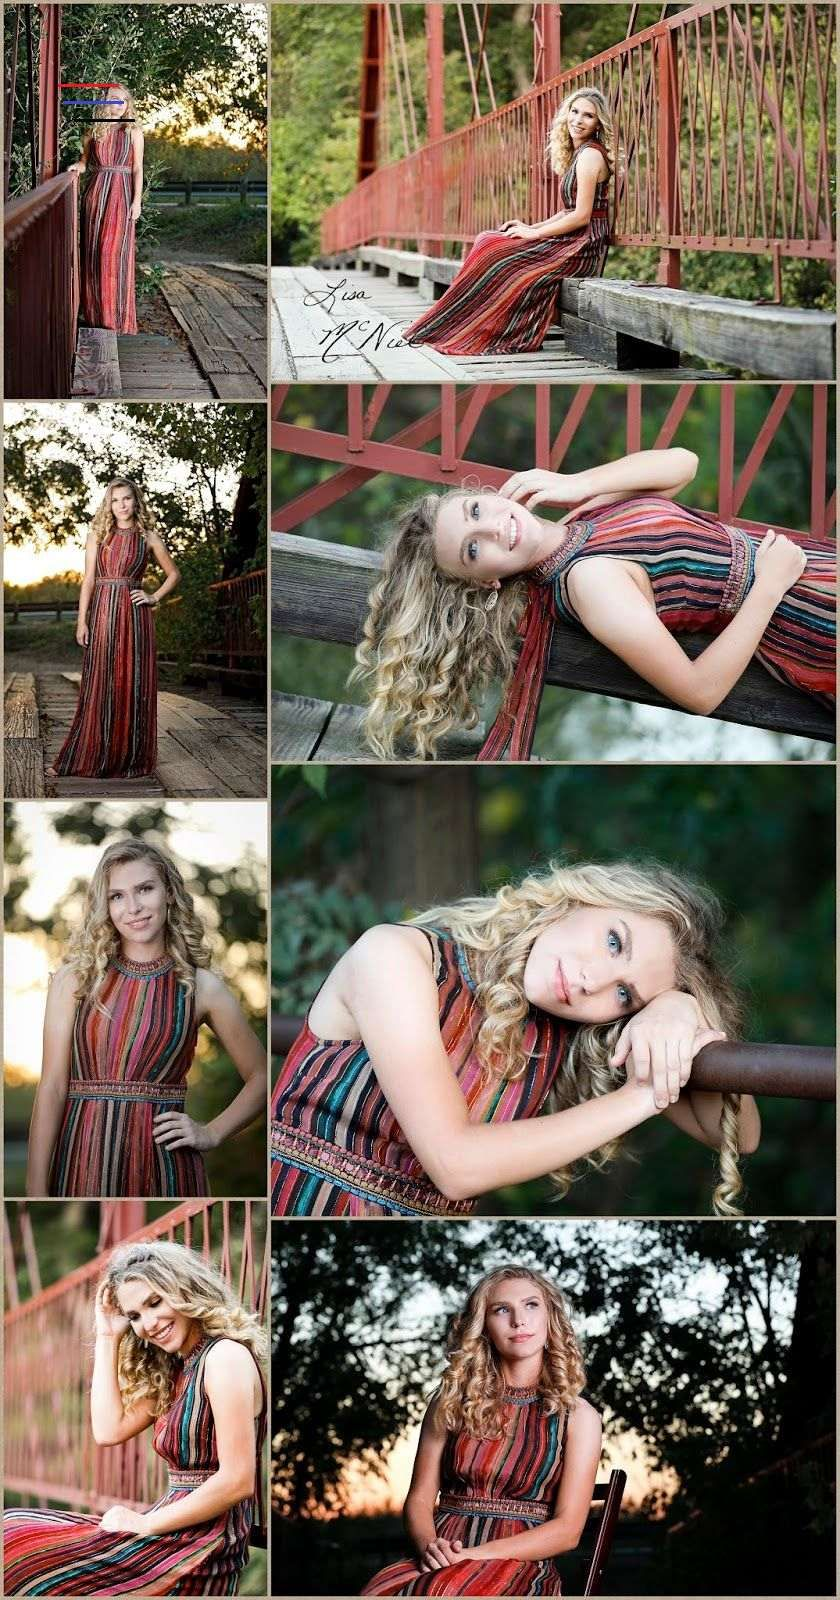 Golf Pictures for Beautiful Senior Girls by Flower Mound